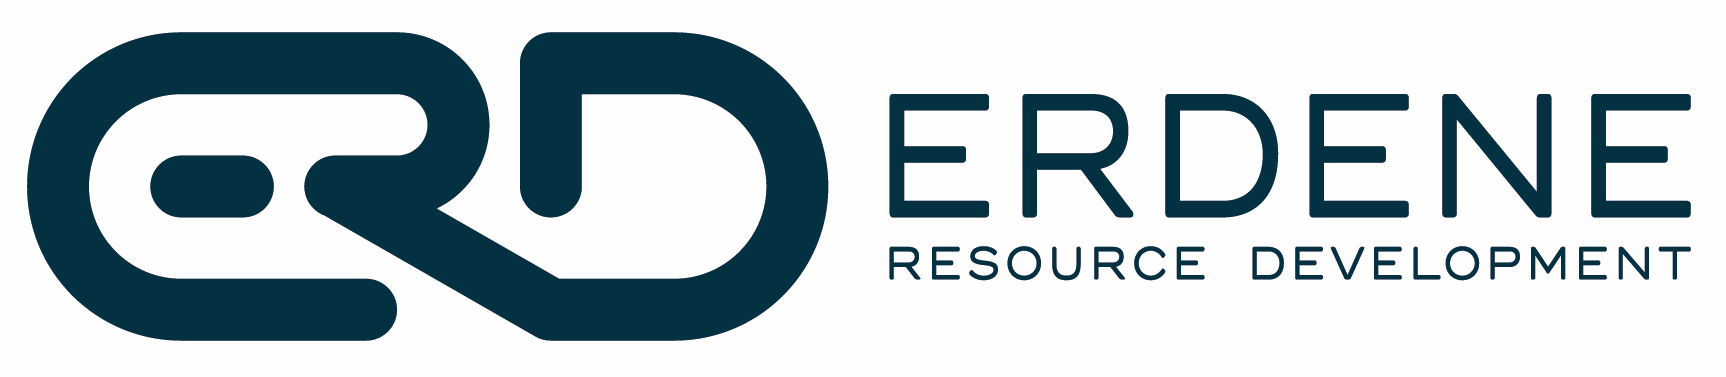 Erdene Extends New Dark Horse Gold Discovery With 500 Metre Step-Out; Commences Follow-up Exploration Program